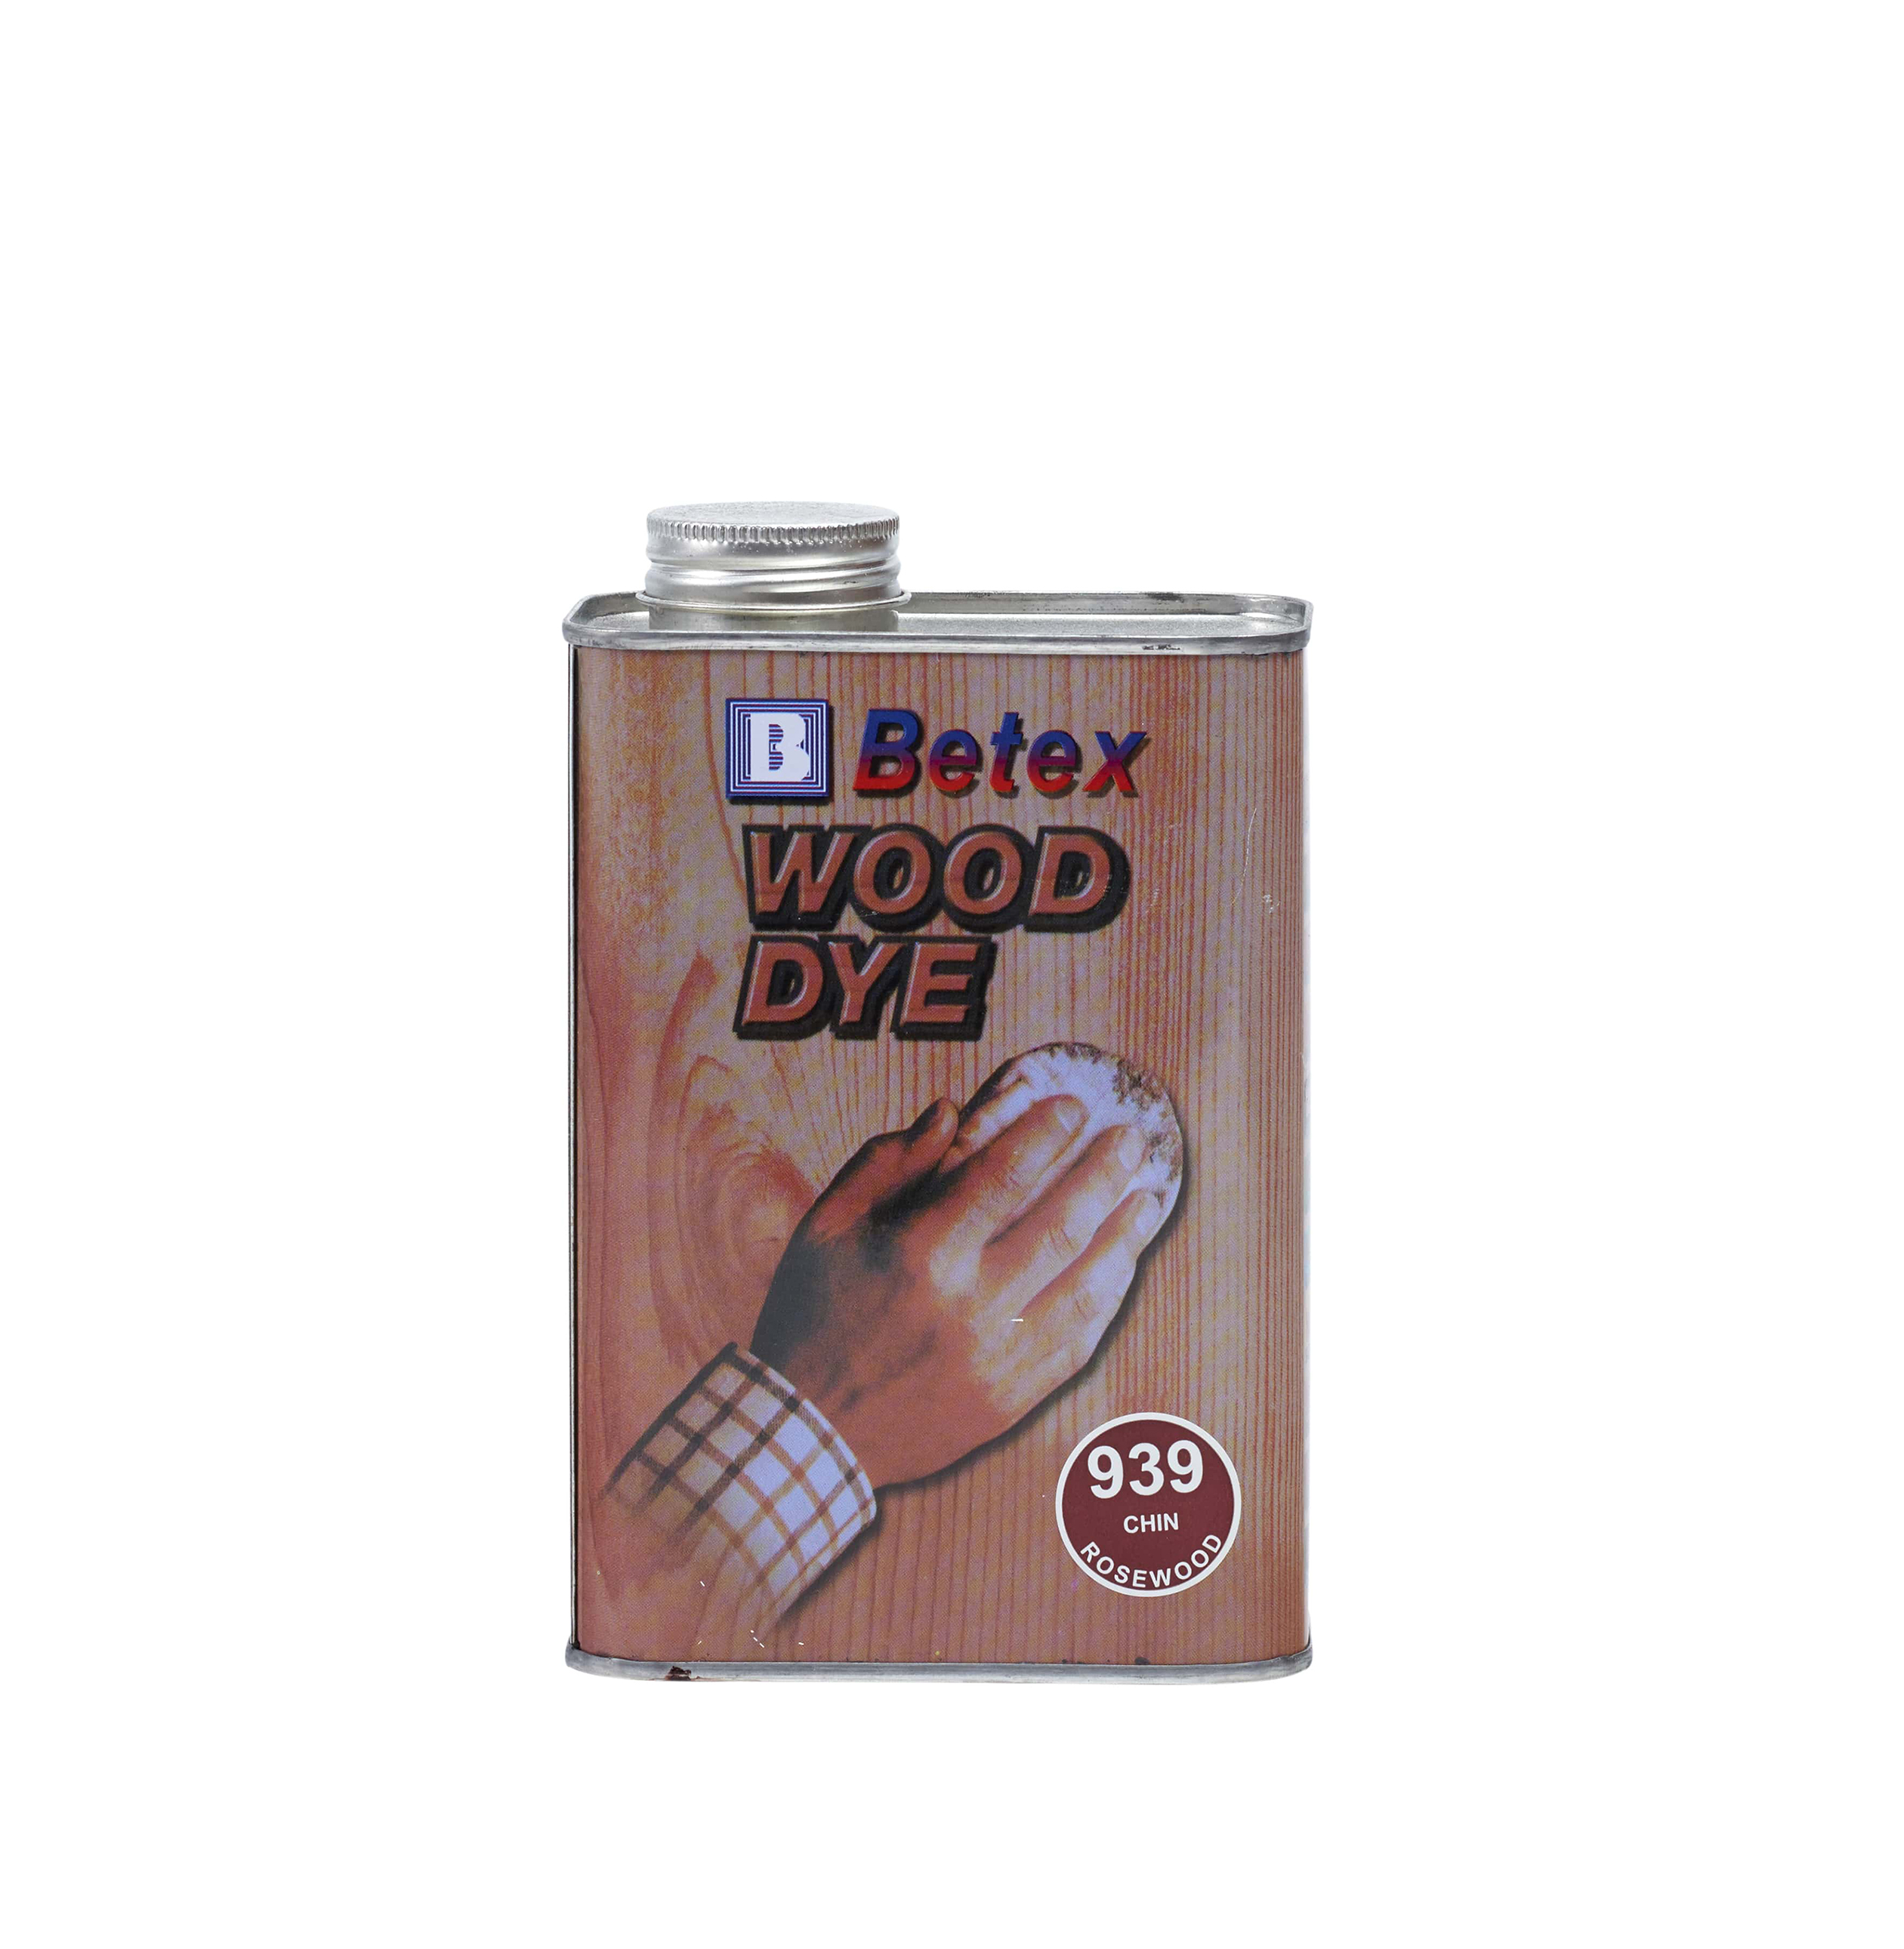 Betex Wood Dye - 1 Litre